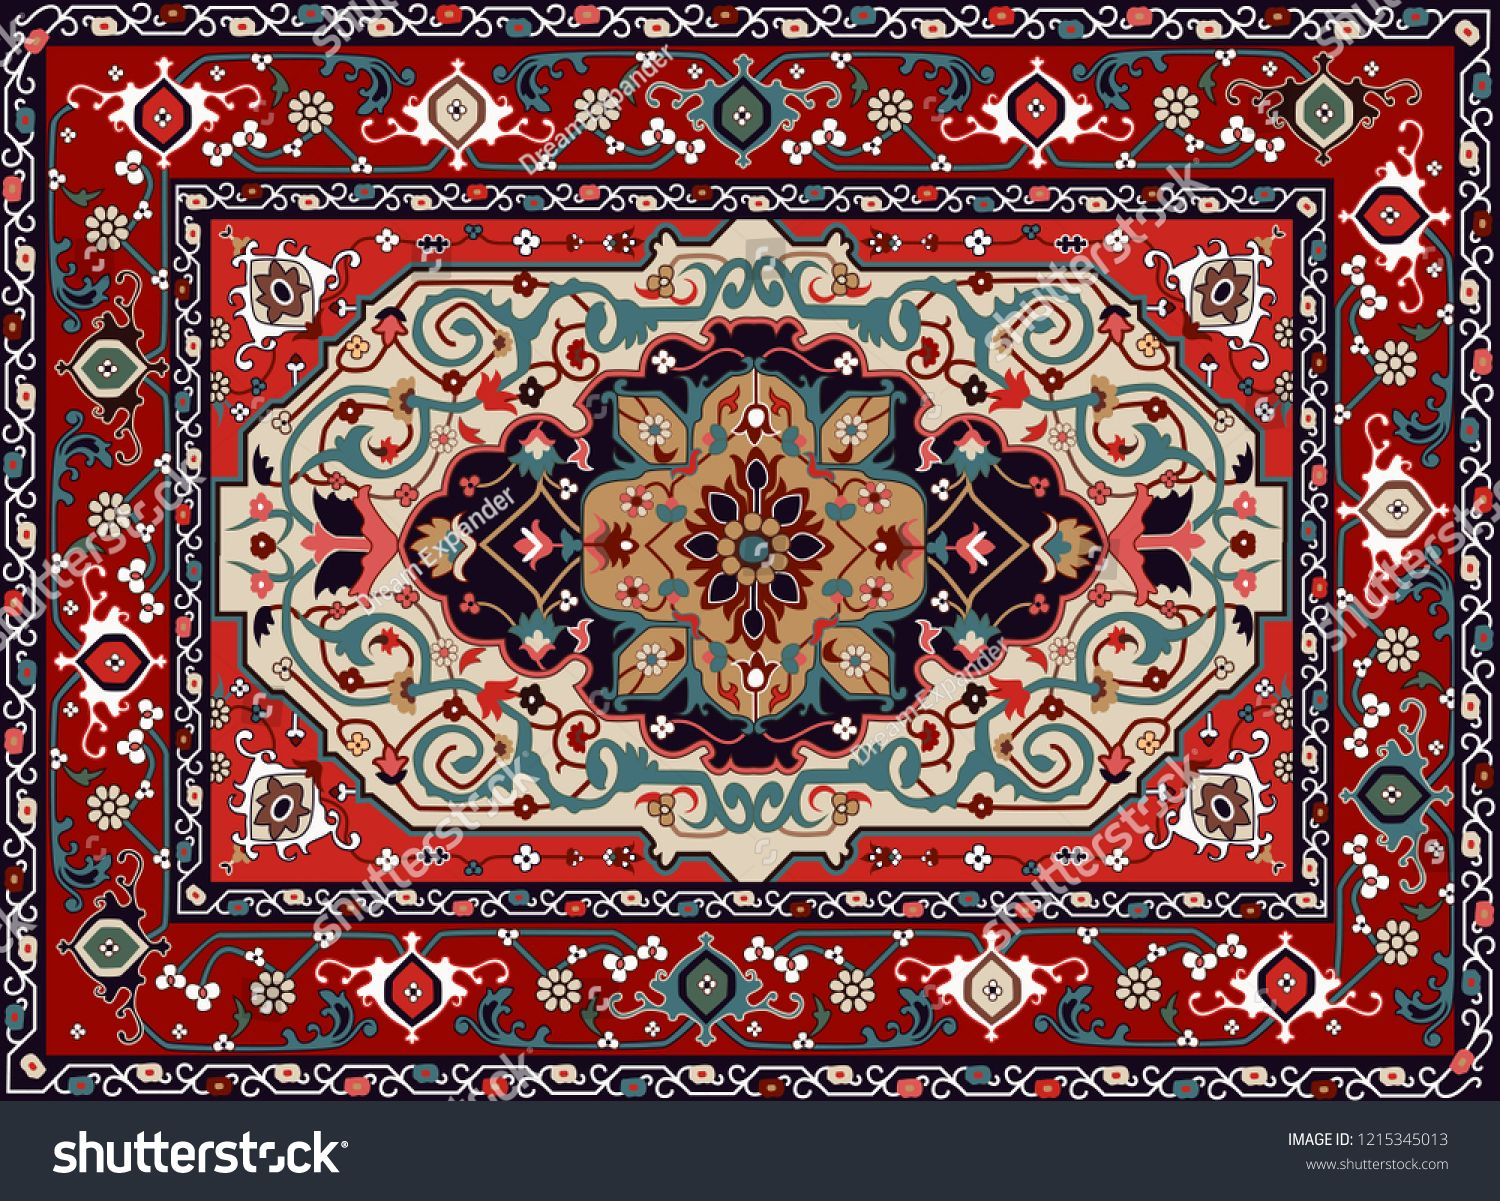 Persian Carpet Tribal Vector Texture Easy To Edit And Change A Few Colors By Swatch Window Vecto Persian Carpet Graphic Design Portfolio Inspiration Persian